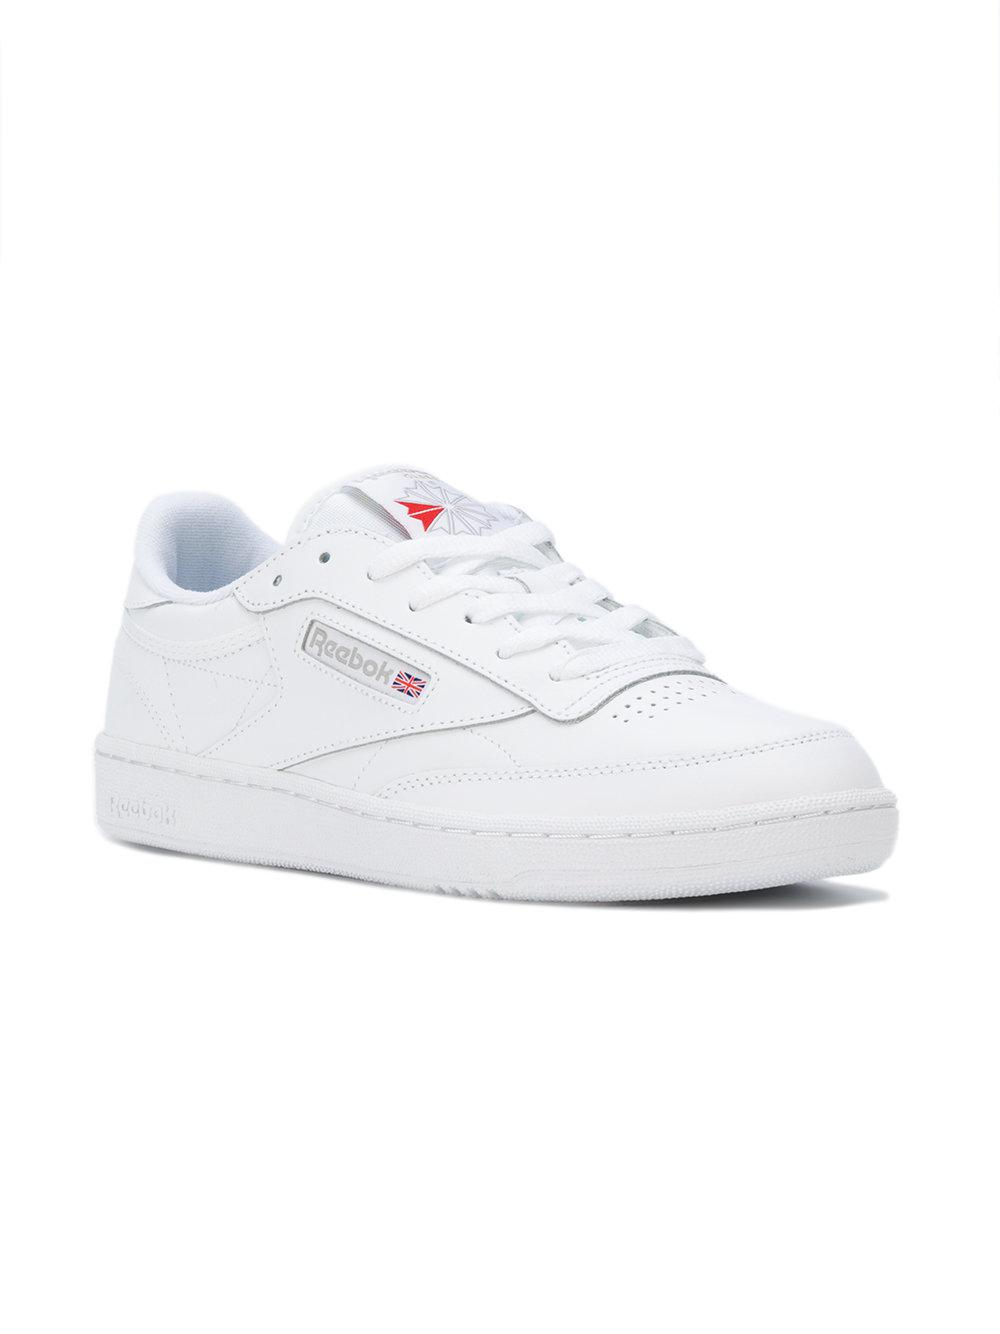 dcd9d8eceda64 Reebok Lace Up Trainers in White - Lyst